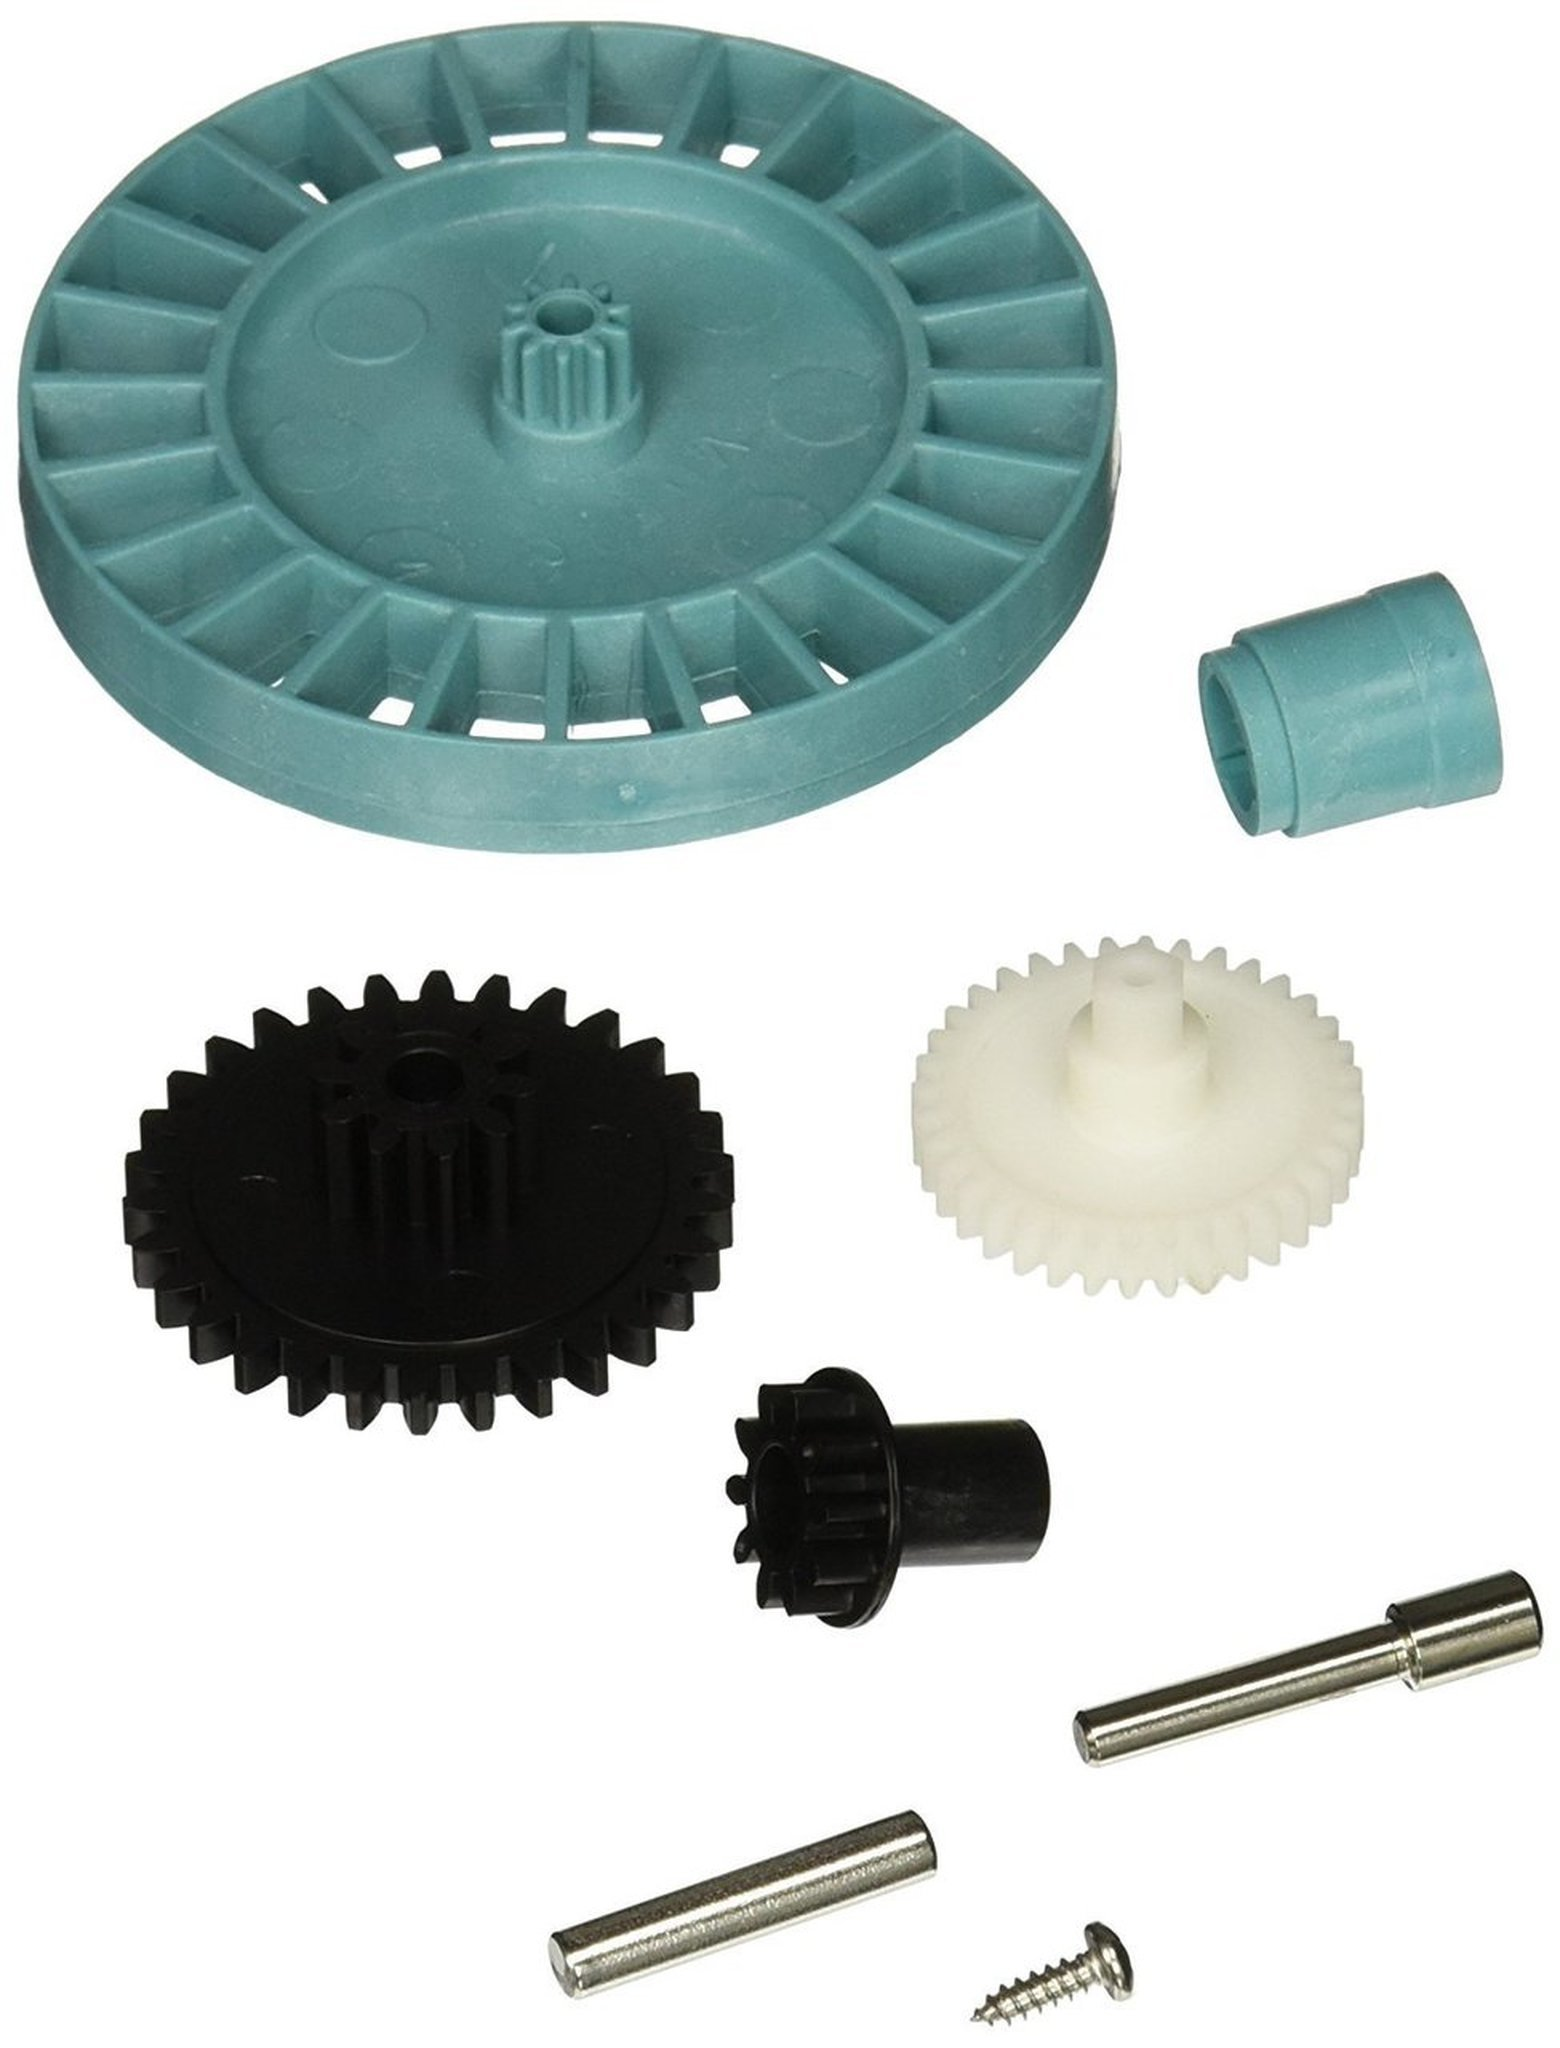 AquaStar Pool Cleaner Parts